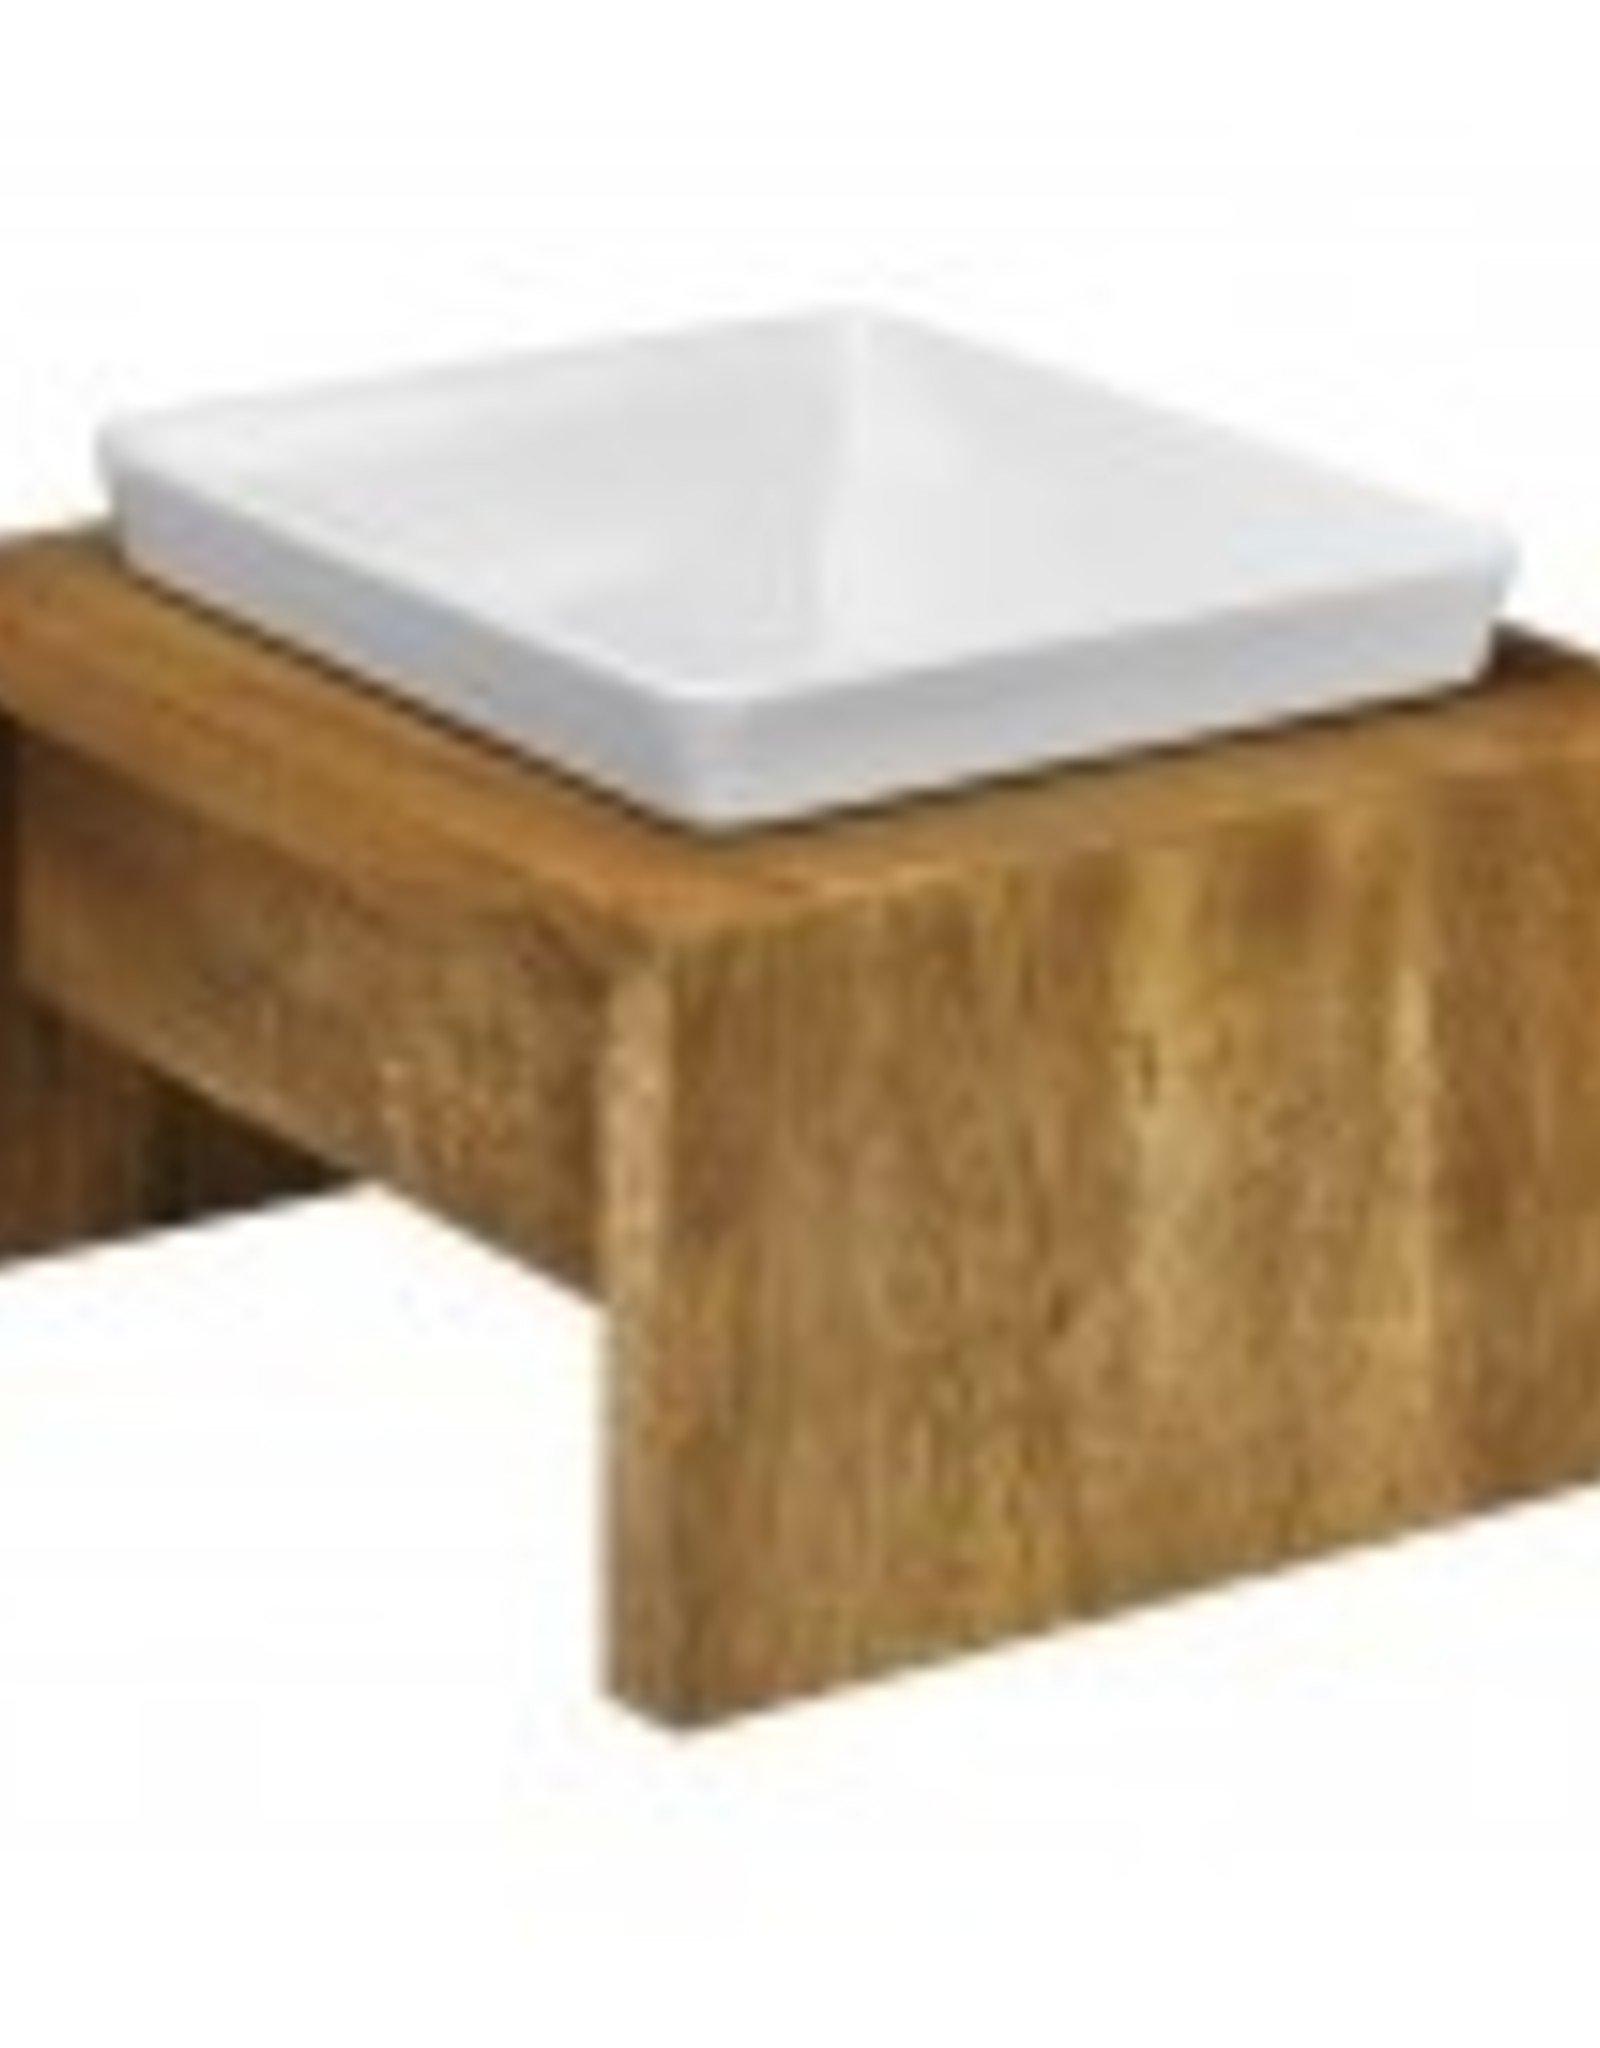 Bowsers Feeder - Bamboo Single M